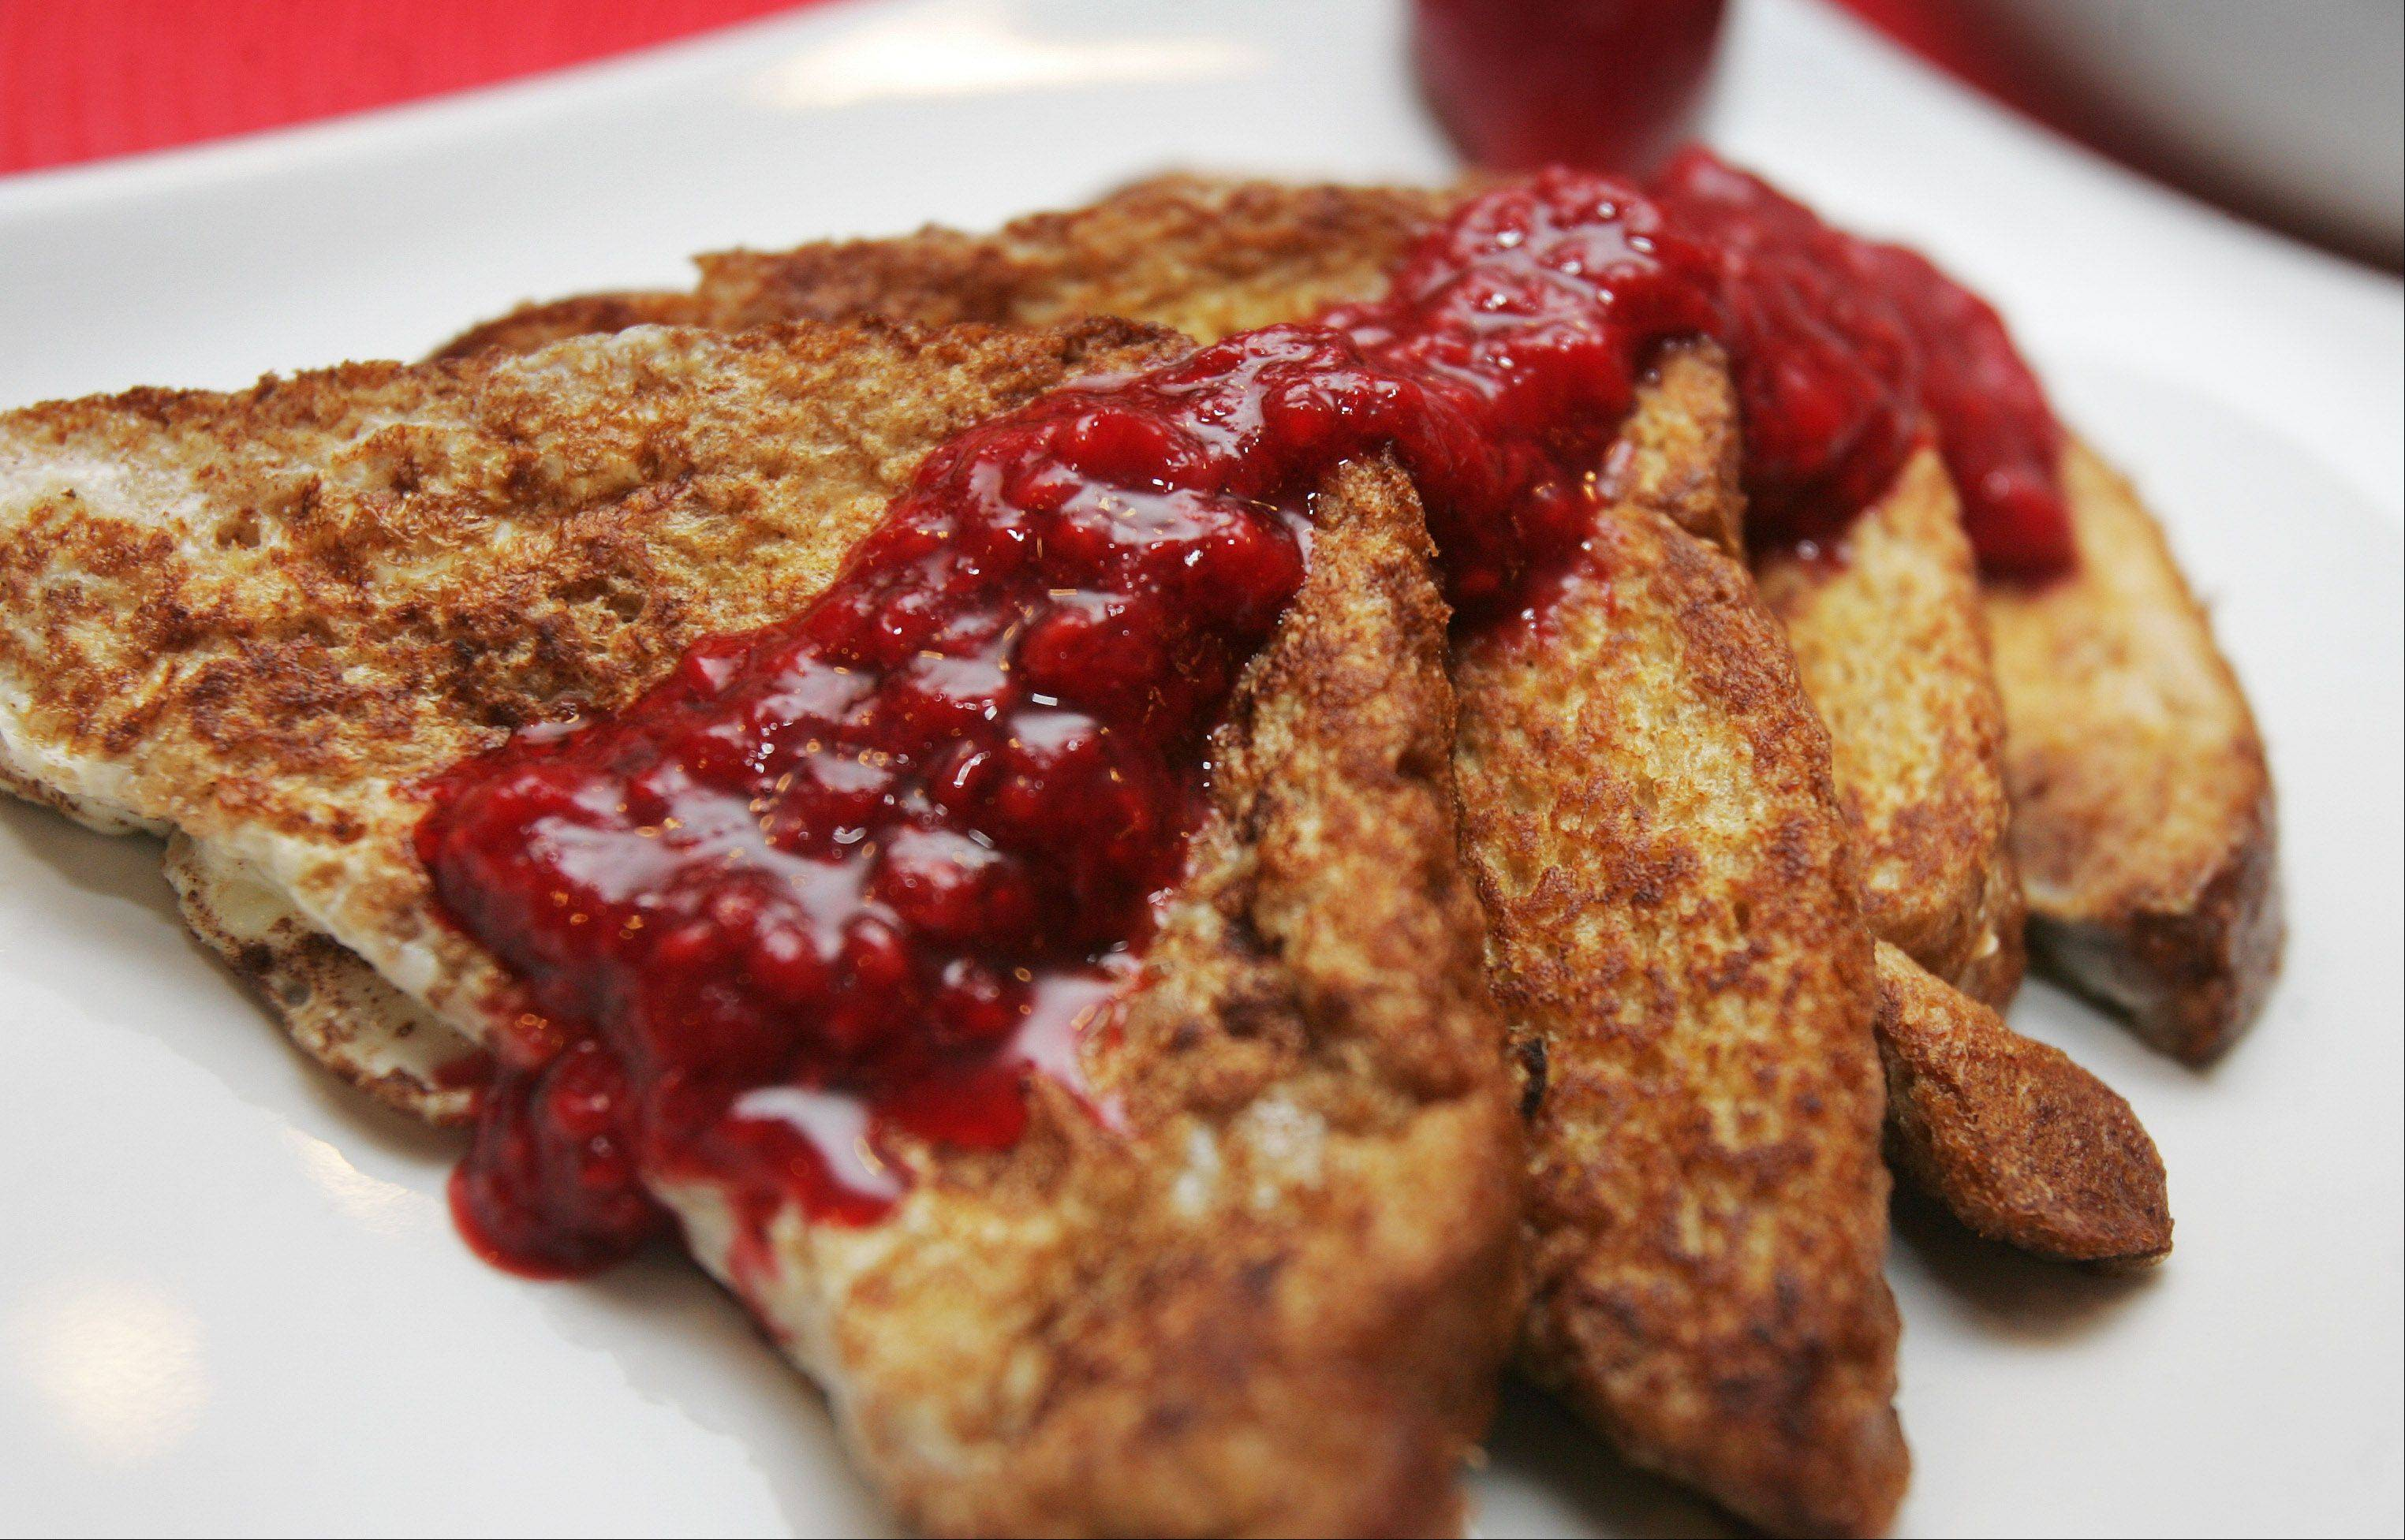 Pamper your sweetheart's heart with a Valentine's Day breakfast of berry-sauced whole wheat French toast.